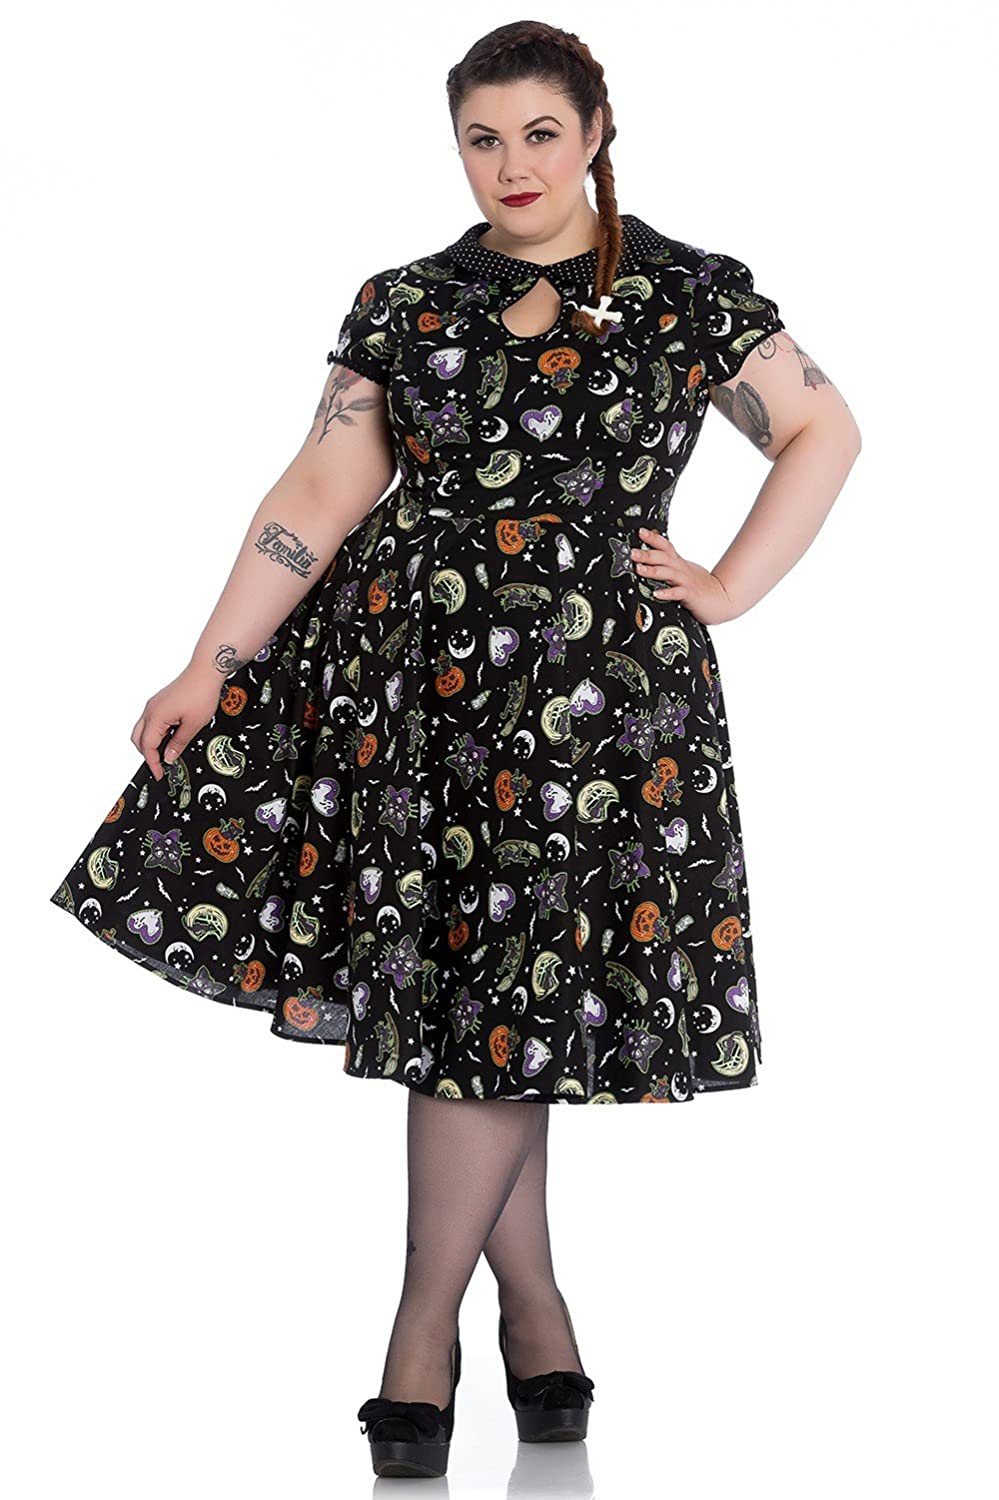 Vintage Retro Halloween Themed Clothing Hell Bunny Plus Size Gothic Halloween Black Cat Salem 50s Dress $80.99 AT vintagedancer.com